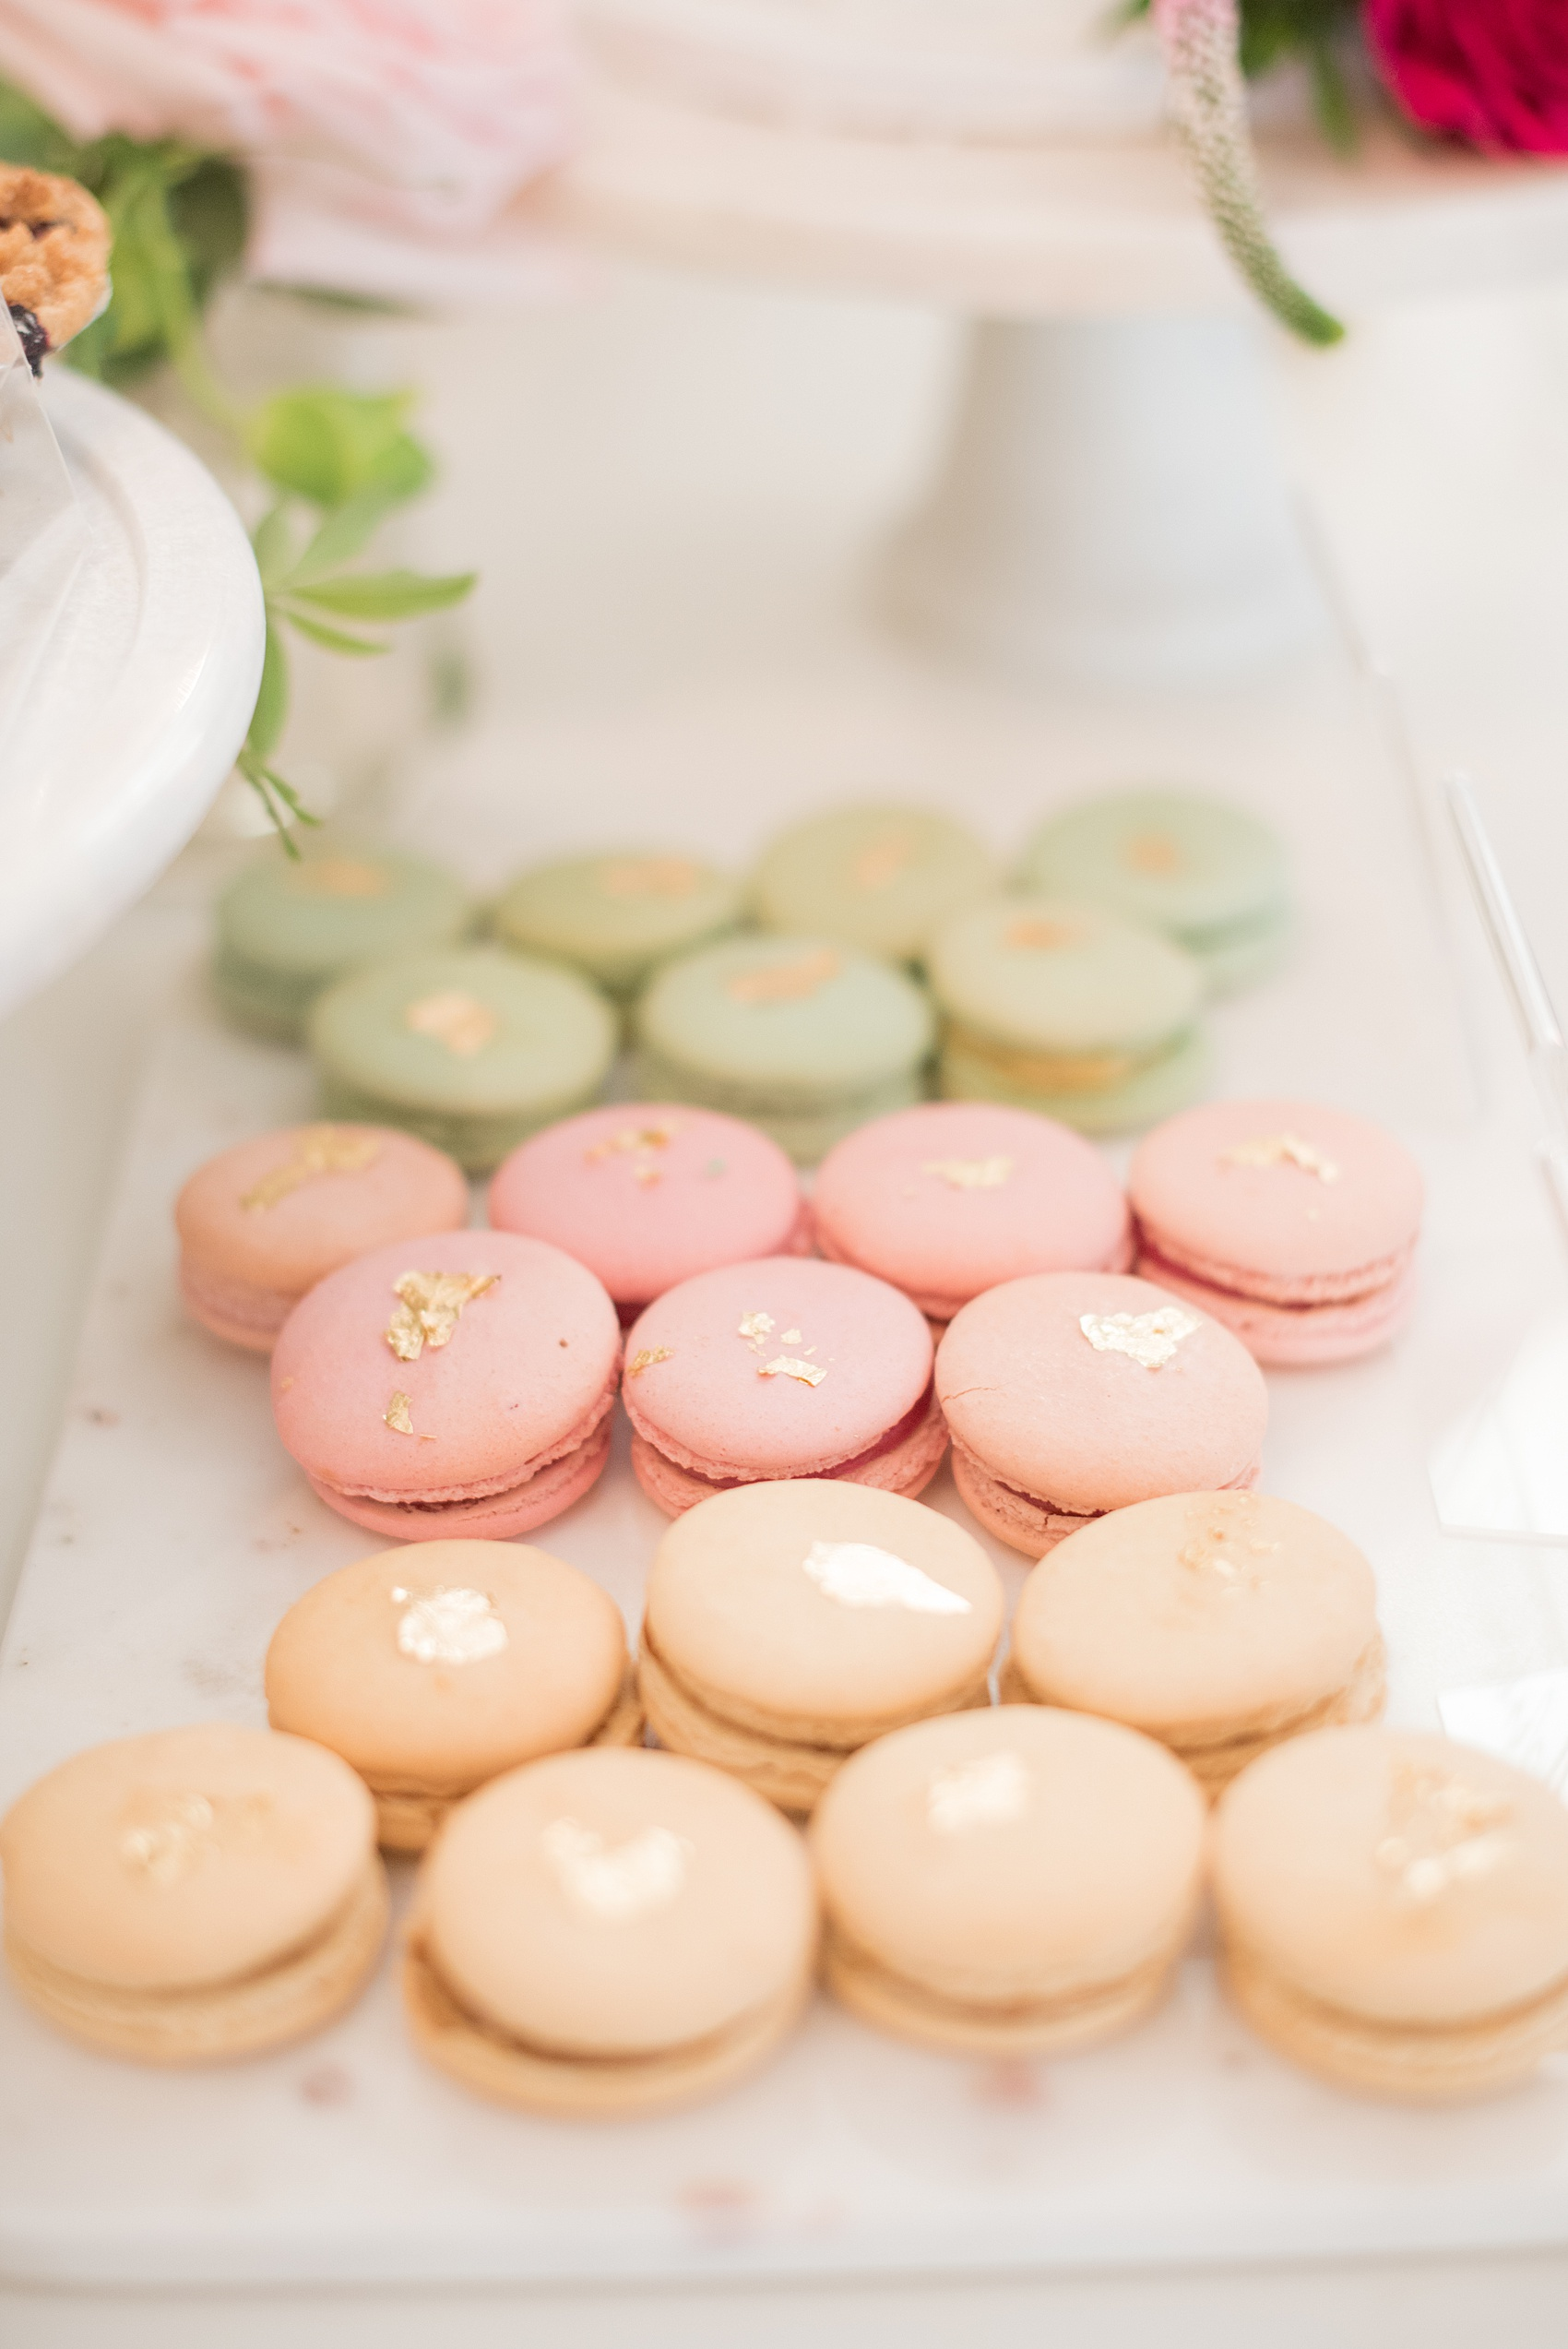 Mikkel Paige Photography pictures from a wedding at Merrimon-Wynne House in Raleigh, NC. Photo of macarons with gold leaf on the dessert table.